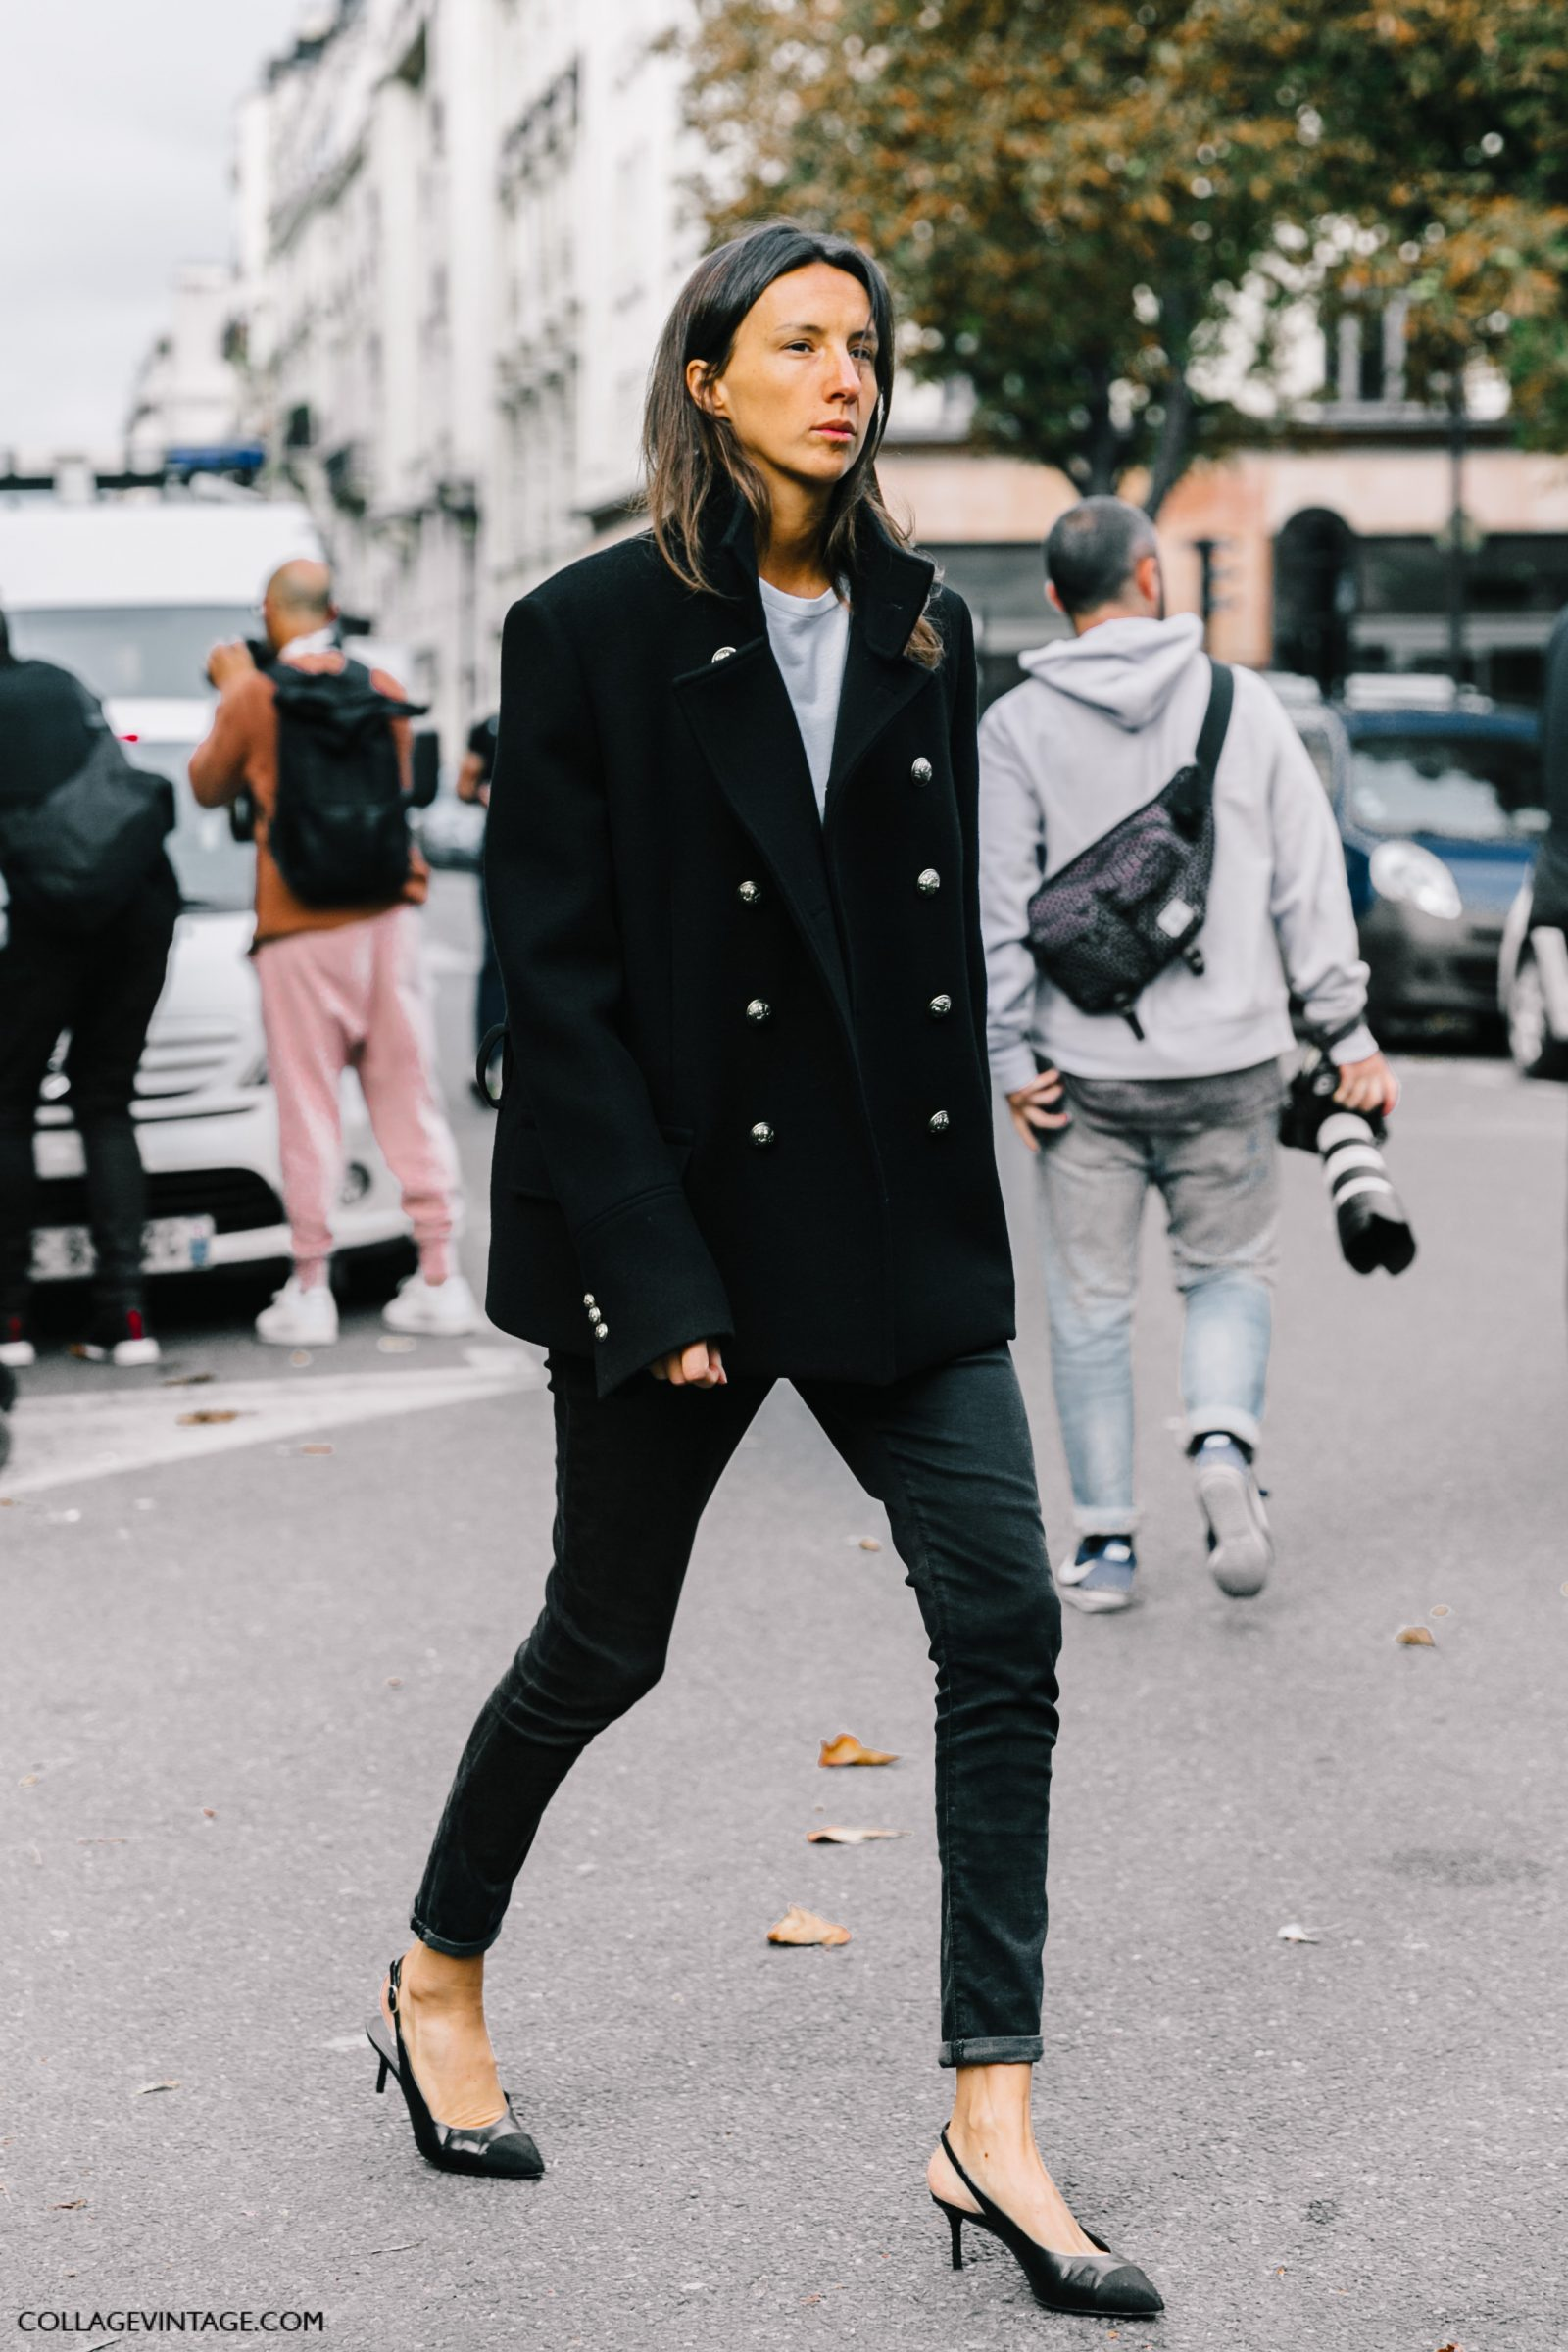 pfw-paris_fashion_week_ss17-street_style-outfits-collage_vintage-chloe-carven-balmain-barbara_bui-18